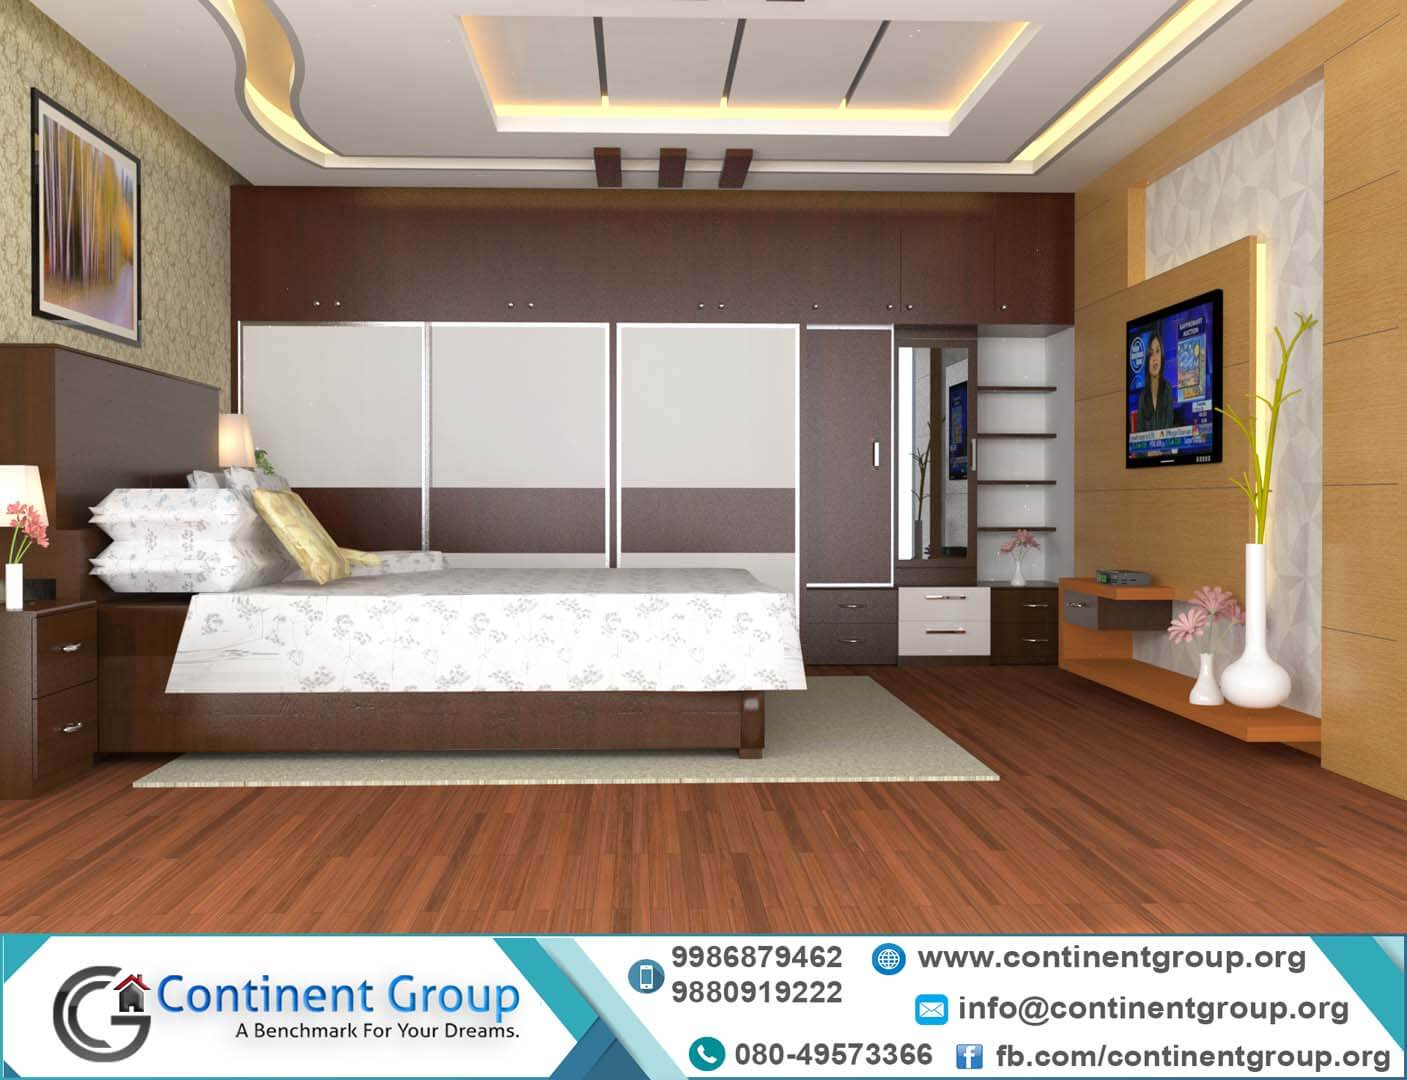 Residential interior design bangalore top interior design for Residential interior designs